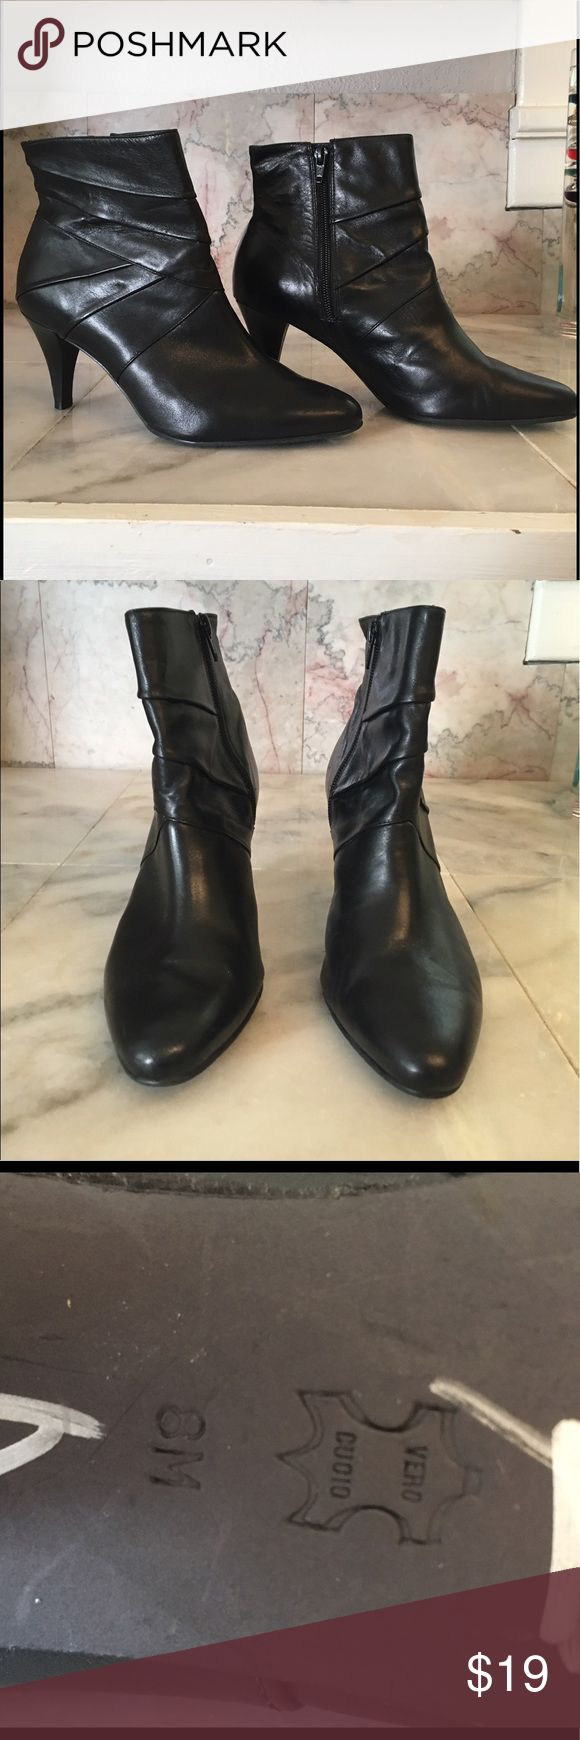 """Antonio Melani Leather High Heel Ankle Boots Antonio Melani Women's """"Satchel"""" Side Zip High Heel Ankle Boots  Black Leather Upper and Sole  Made in Brazil  Size 8  Smoke Free, Pet Friendly  Thank you for looking! ANTONIO MELANI Shoes Ankle Boots & Booties"""